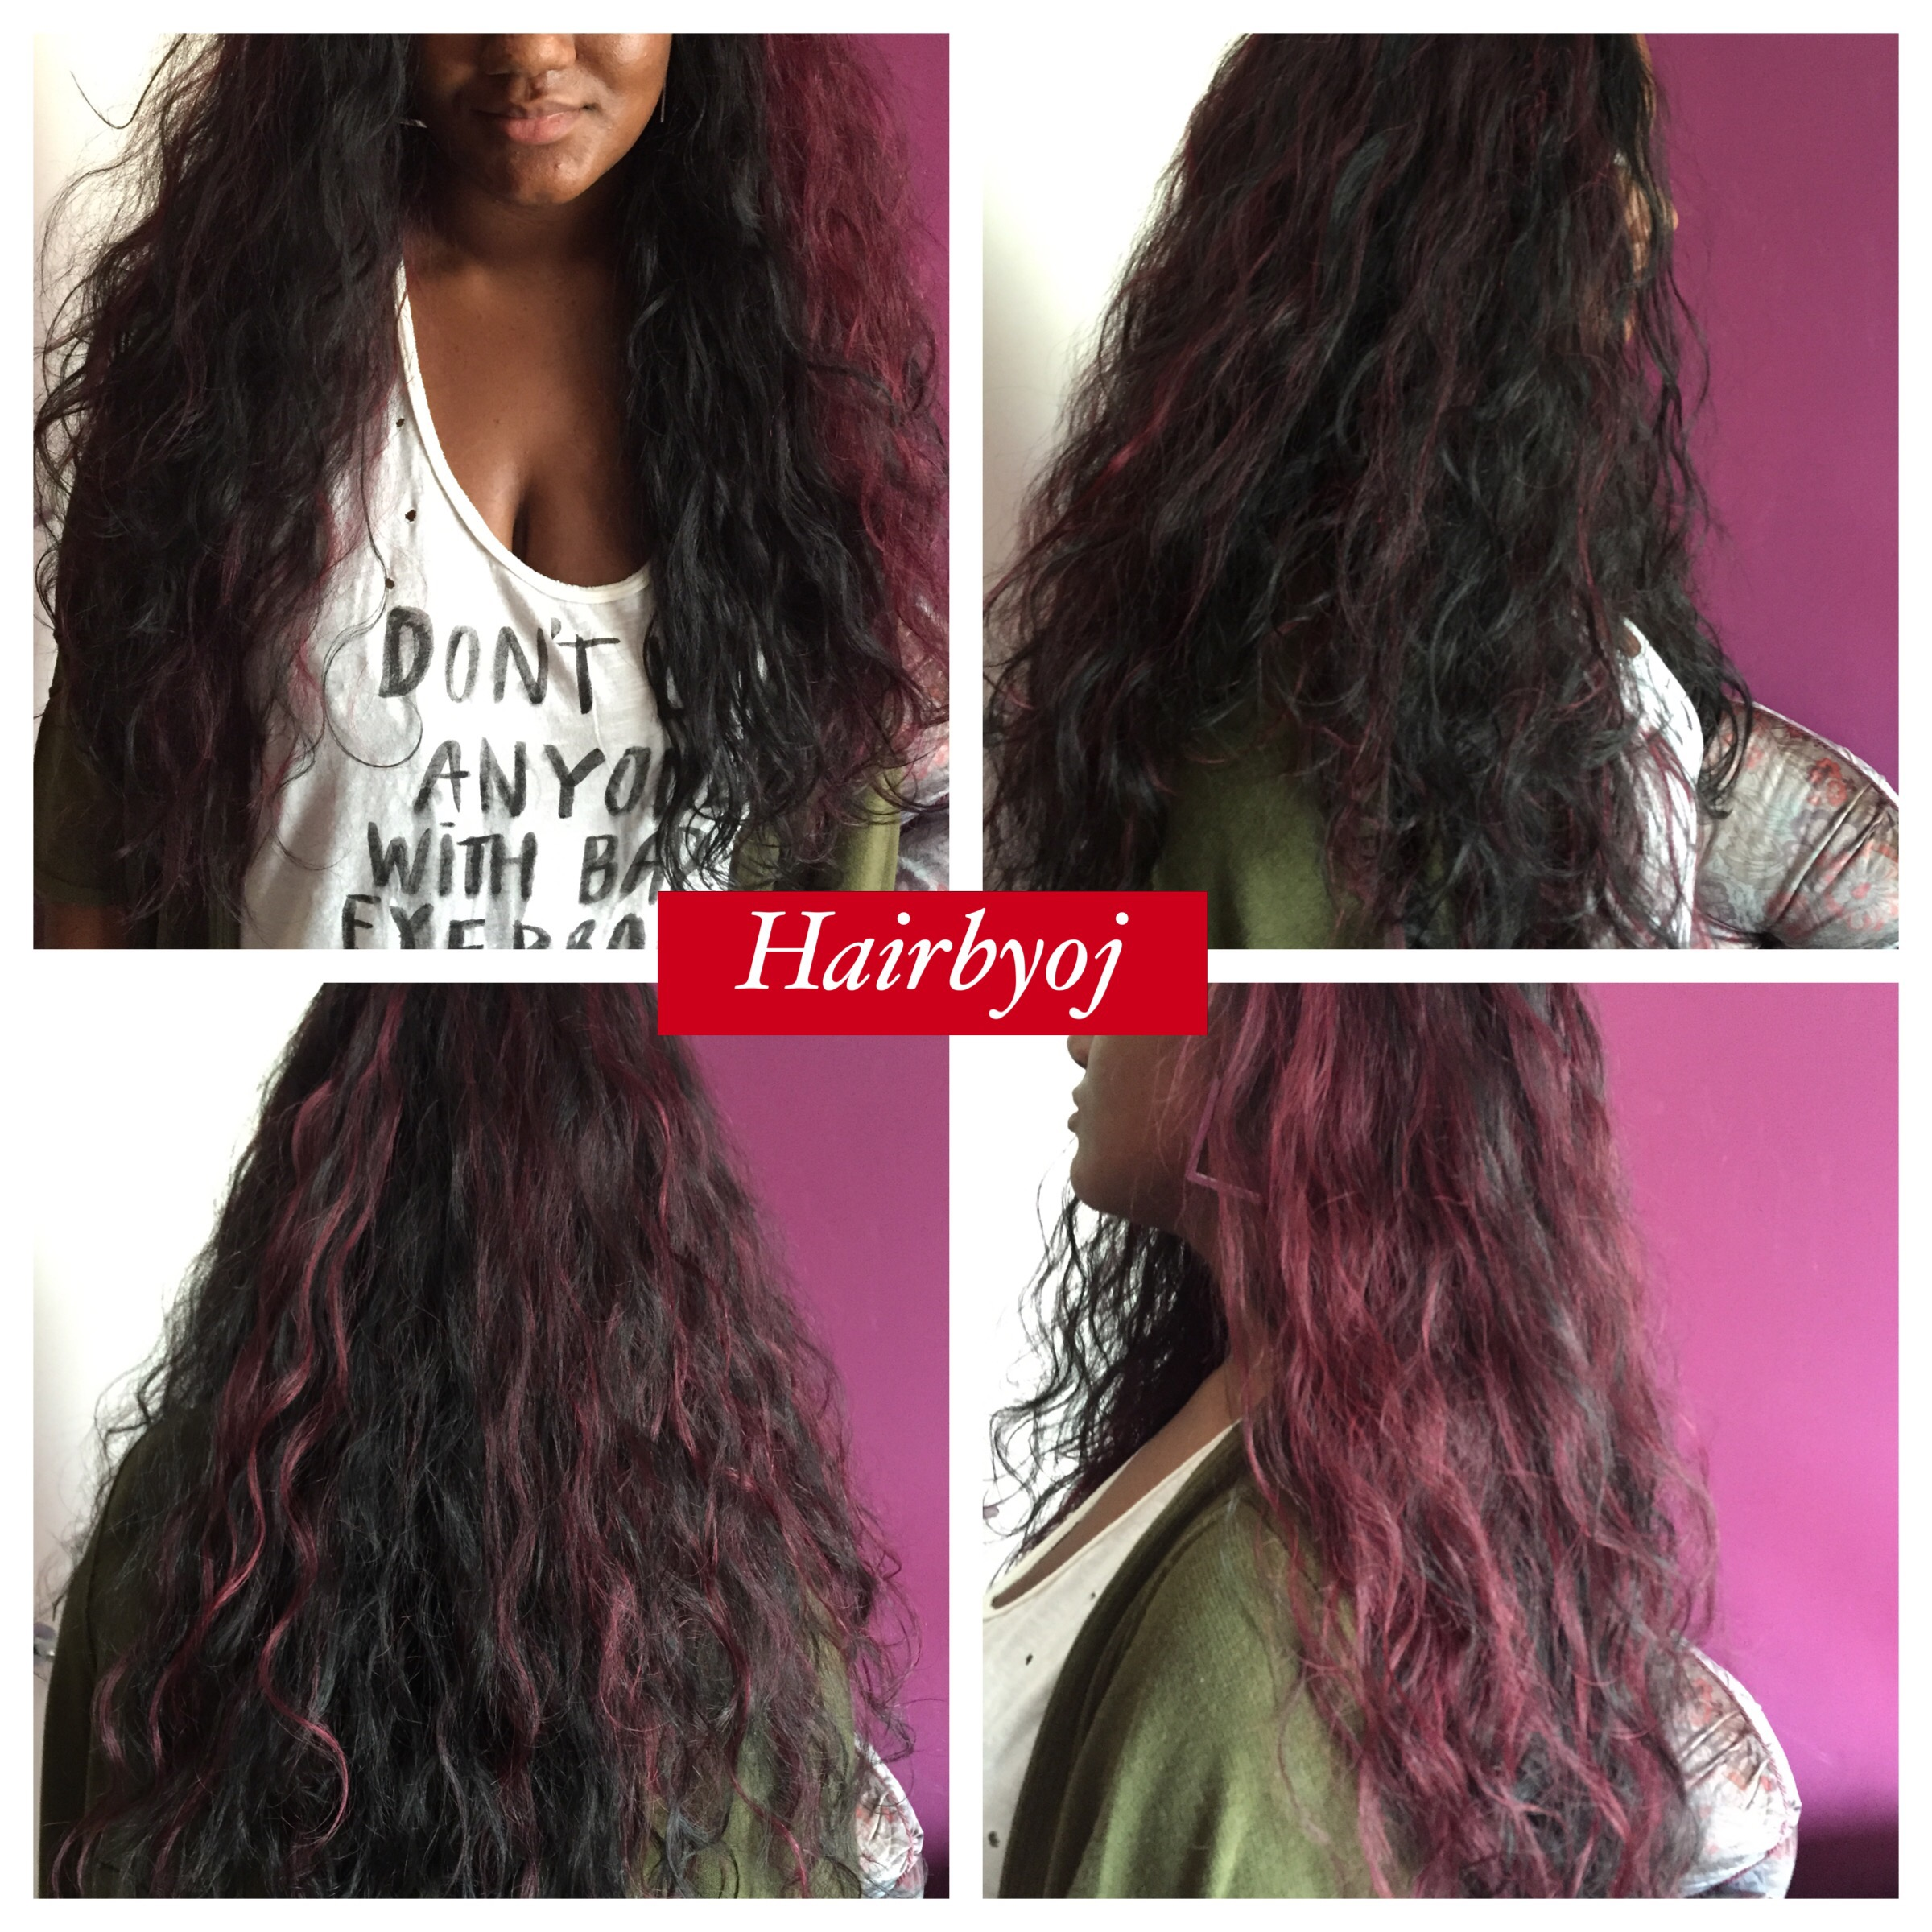 Crocheting Loose Hair : very loose hair takes a lot longer than curlier hair or marley hair ...